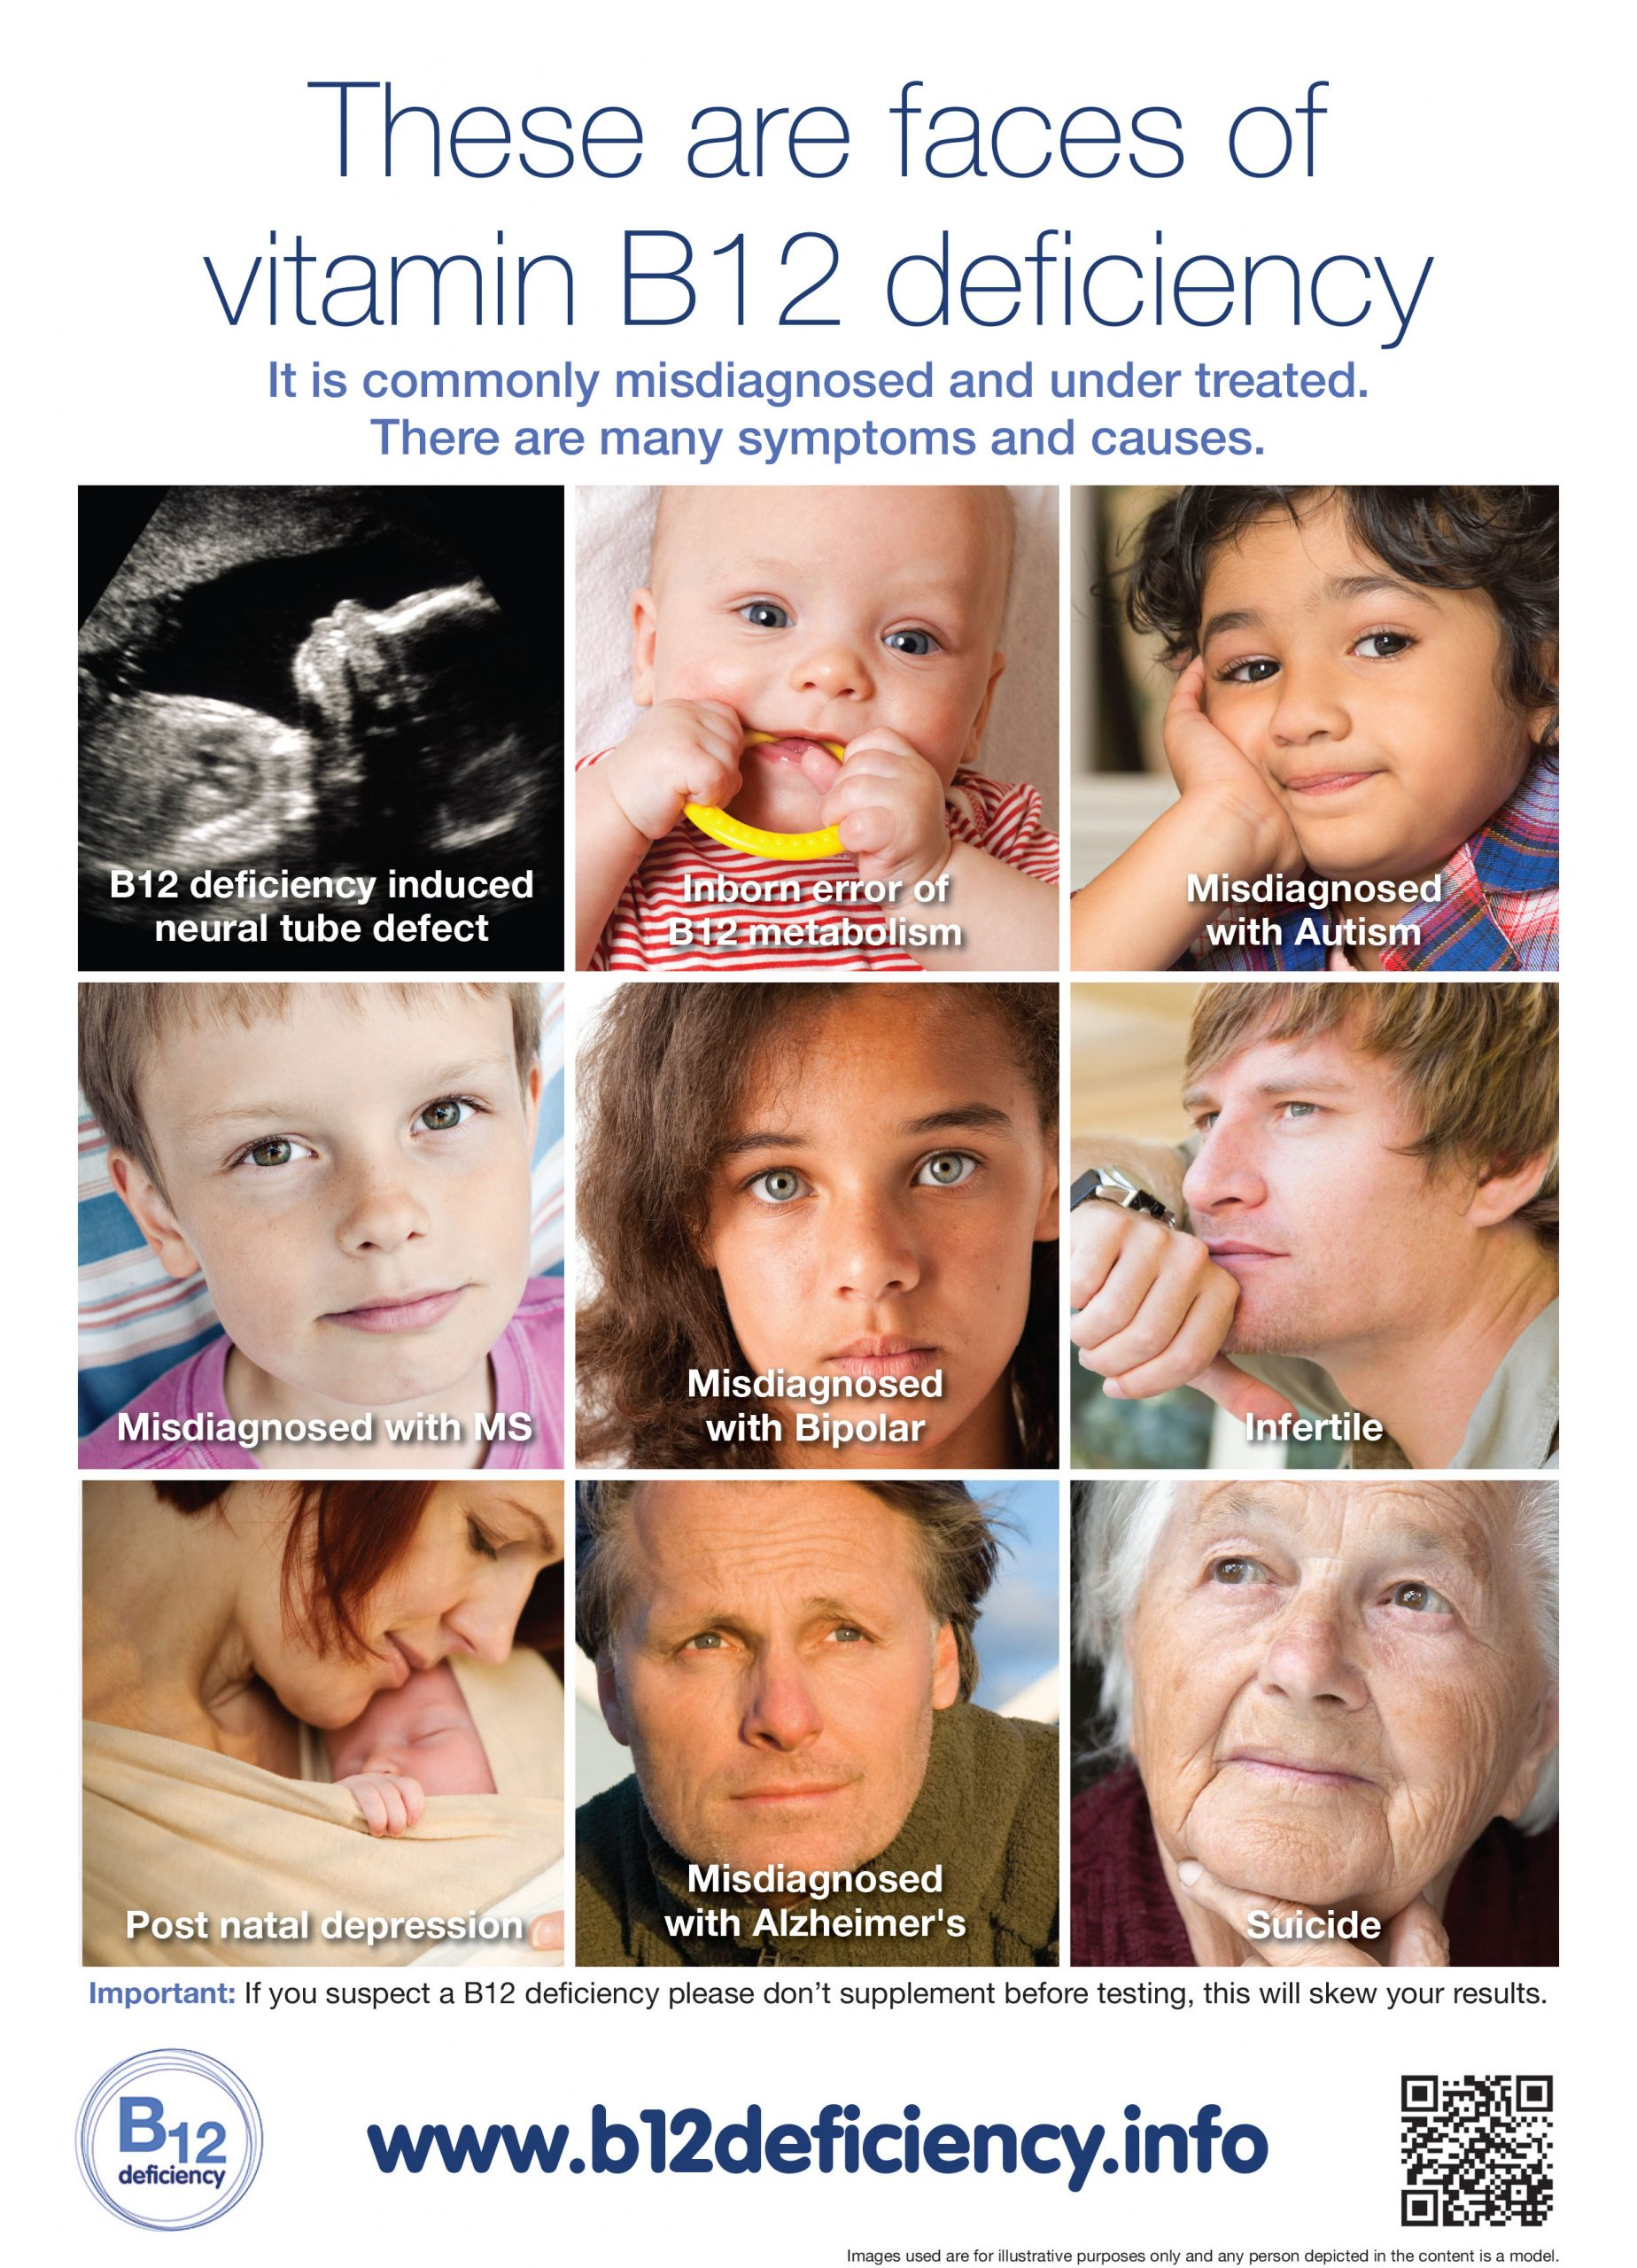 There are many faces of Vitamin B12 deficiency……….